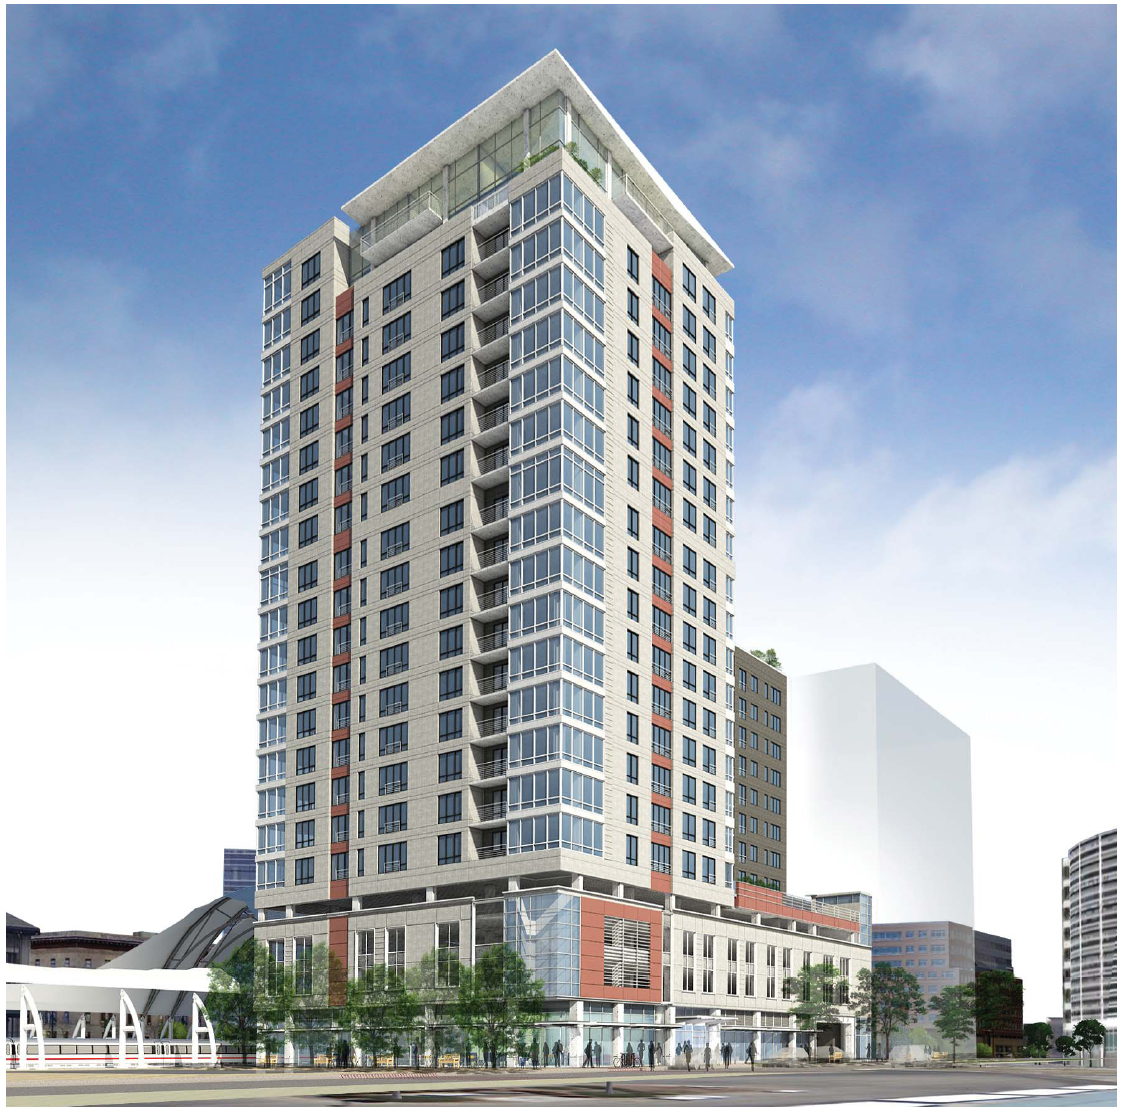 Denver 1650 Wewatta Street 230 Ft 70 M 21 Floors